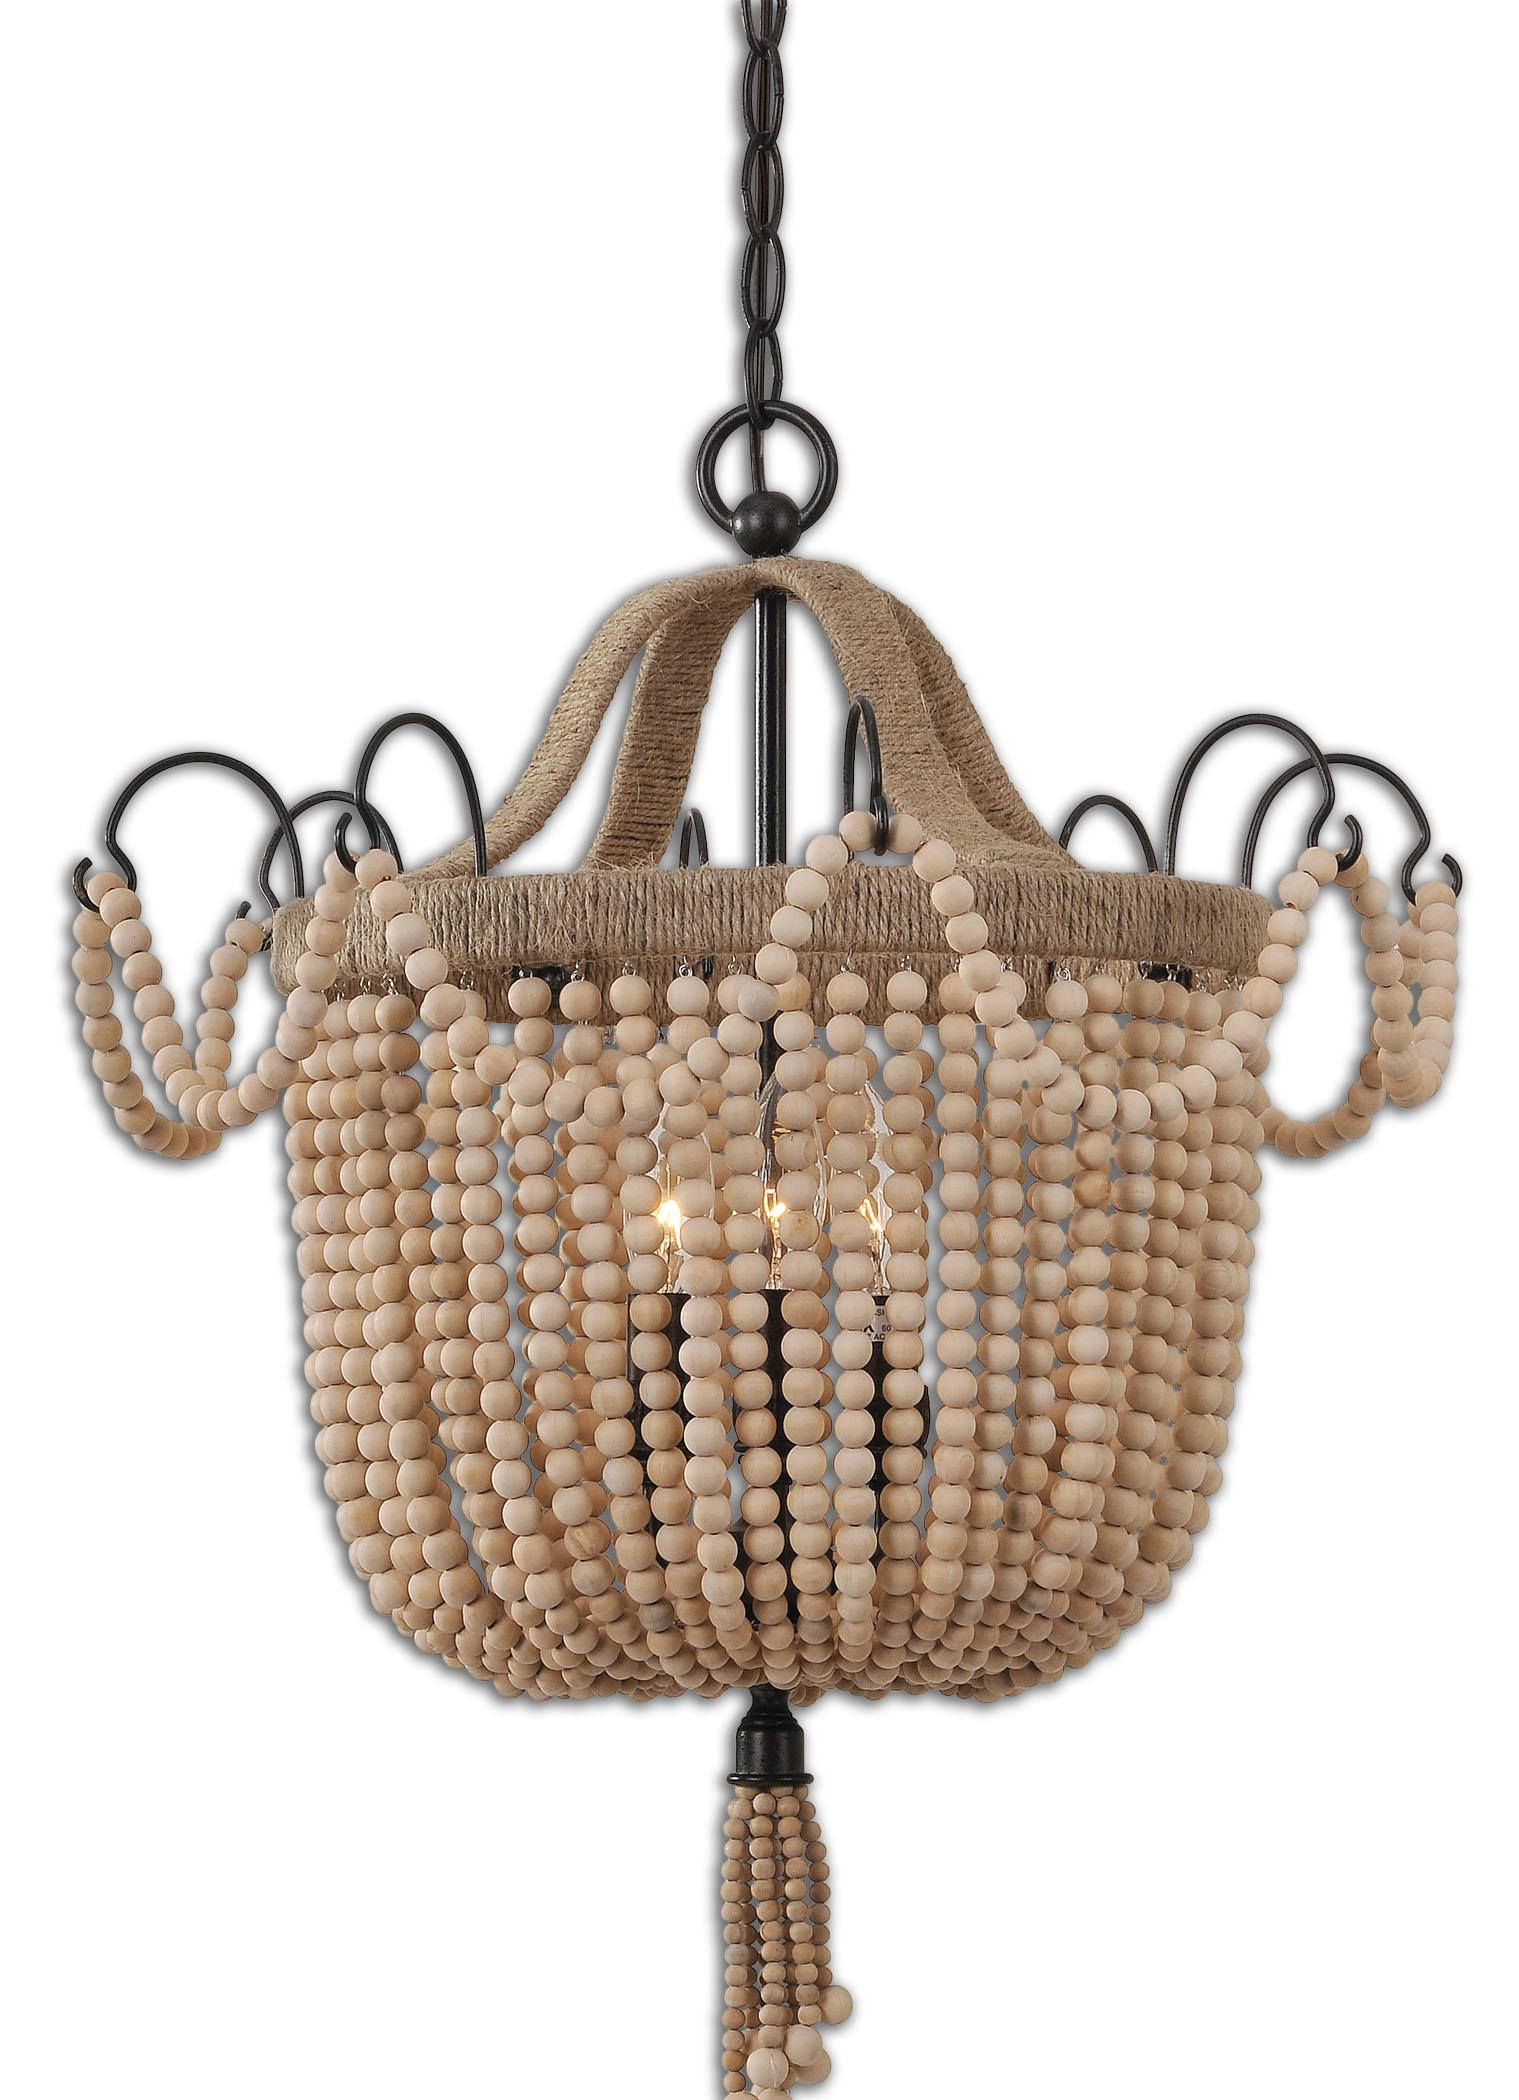 Uttermost Lighting Fixtures Civenna 3 Light Pendant - Item Number: 21992